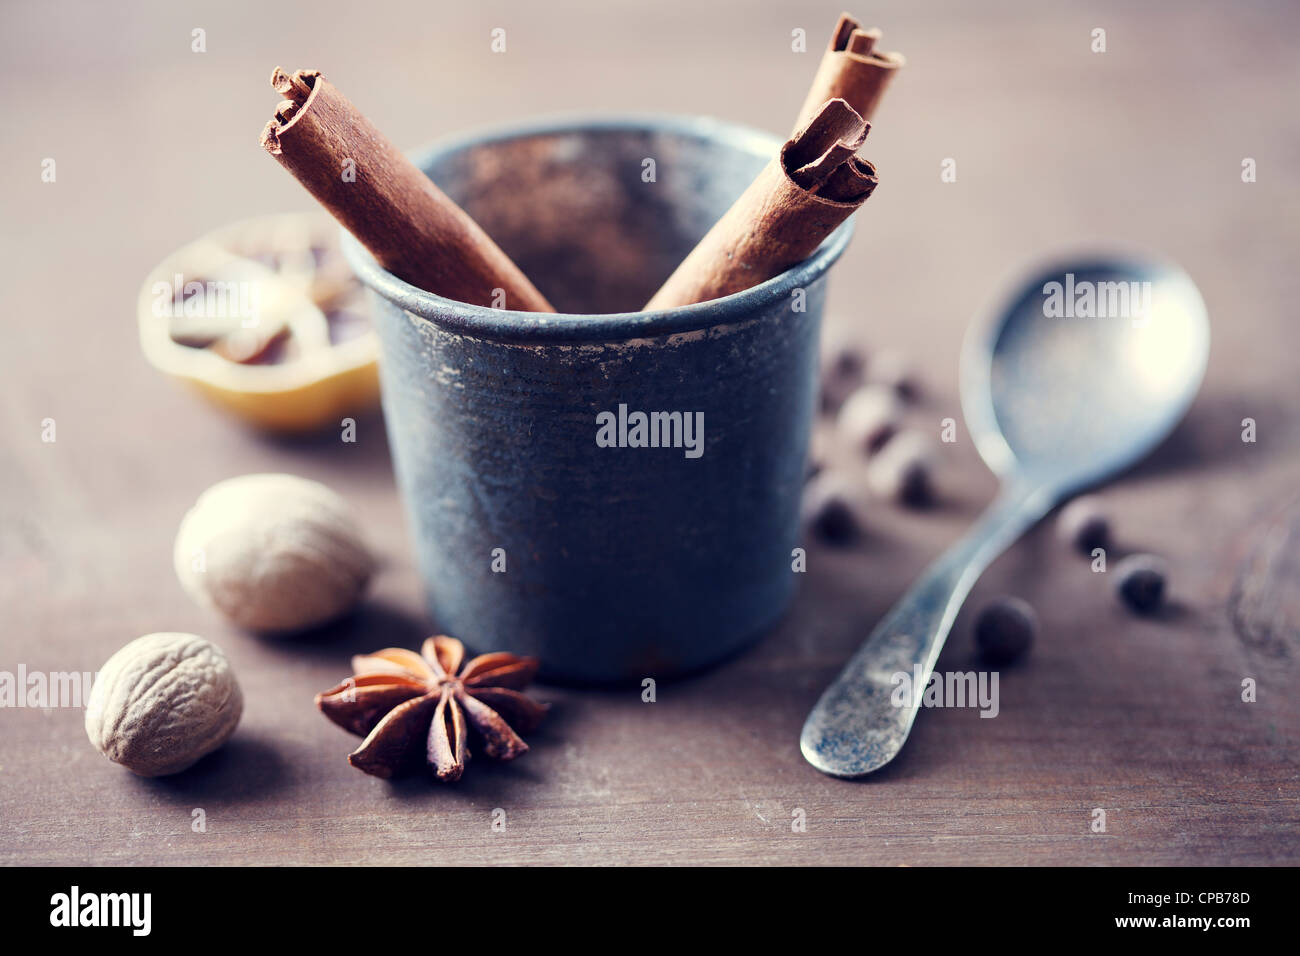 herbs and spices in a rustic setting Stock Photo